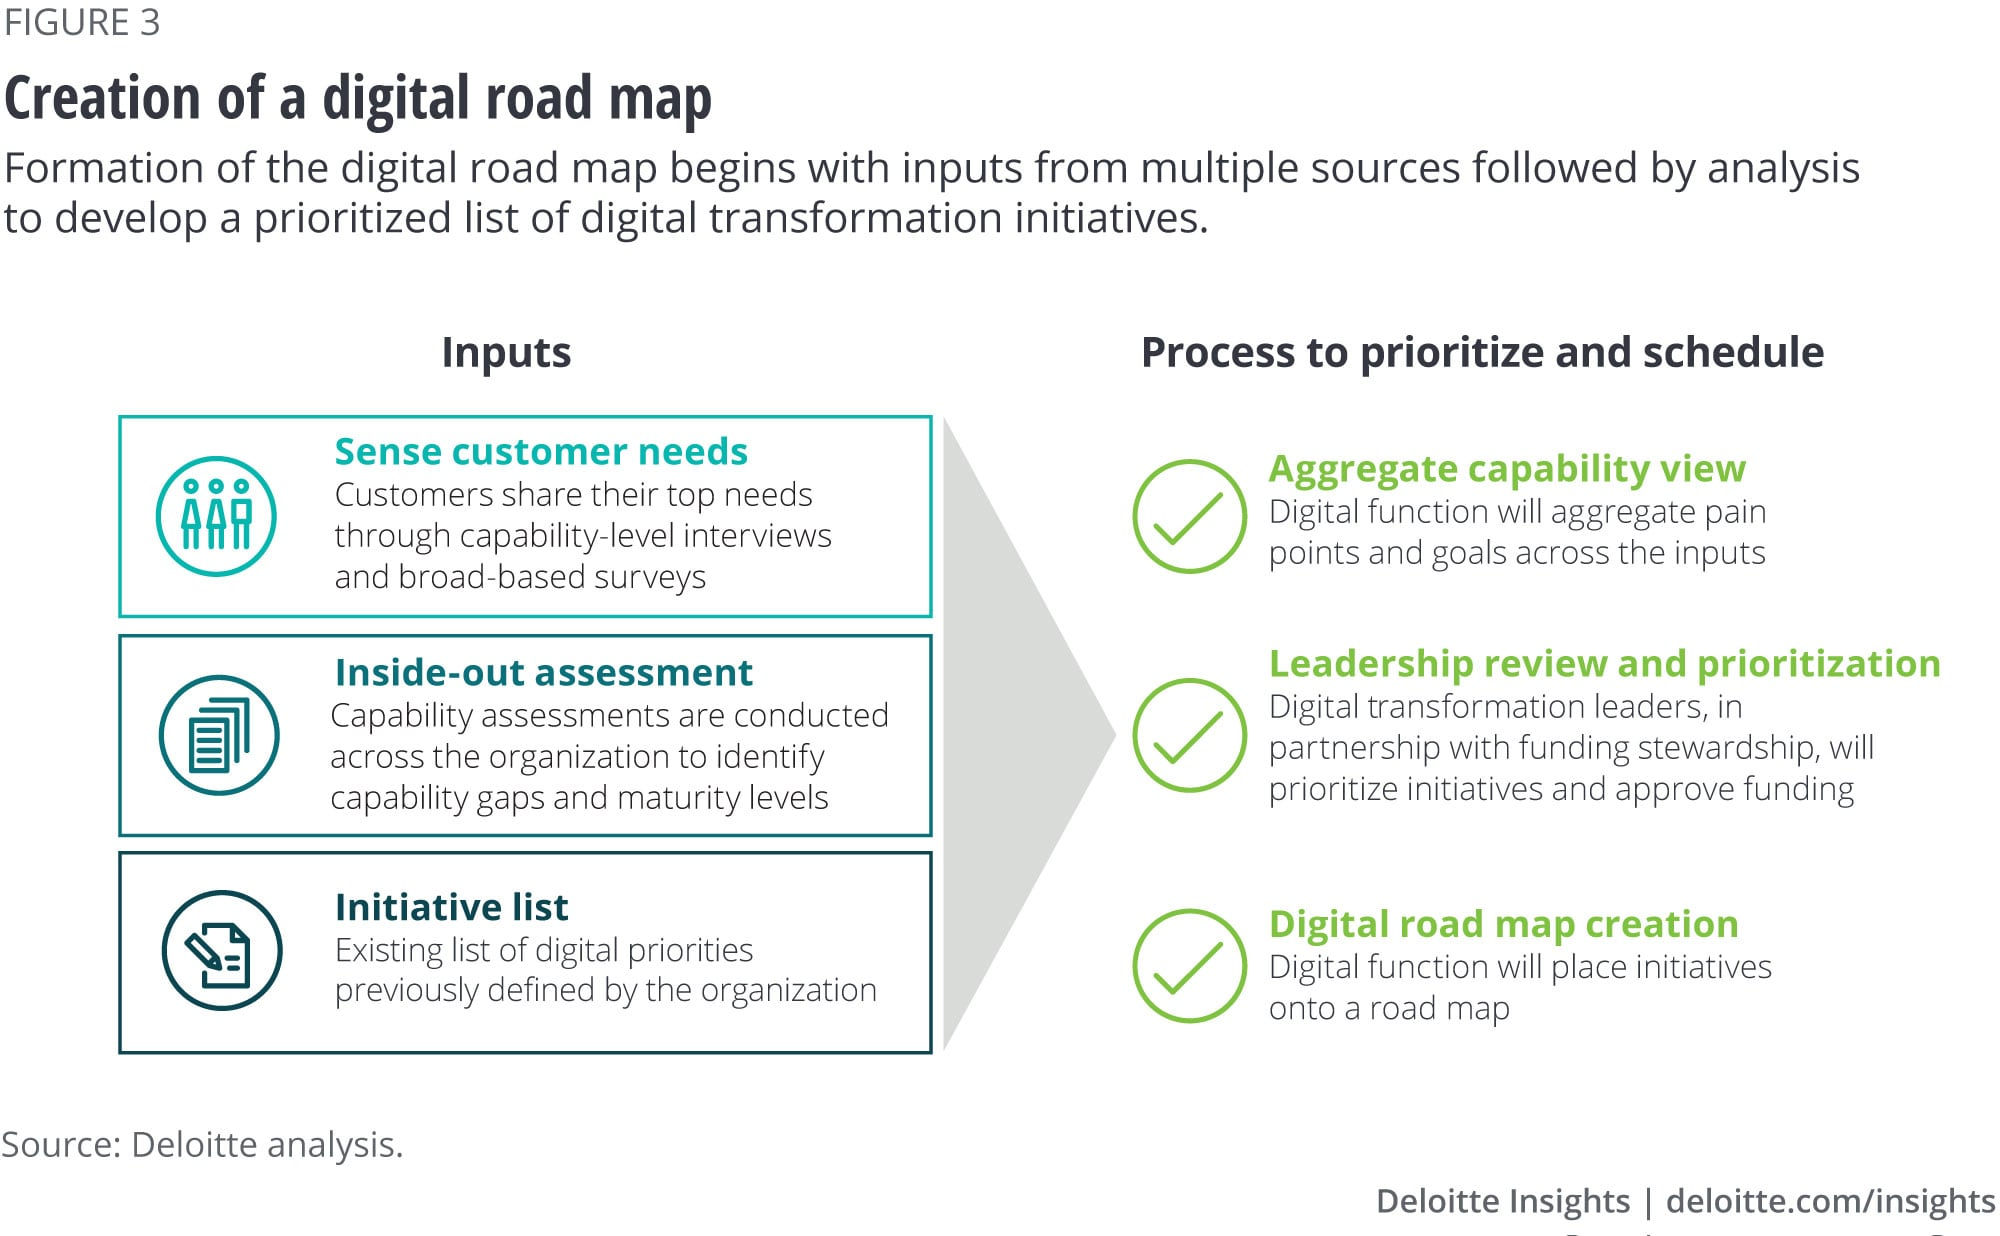 Creation of a digital road map